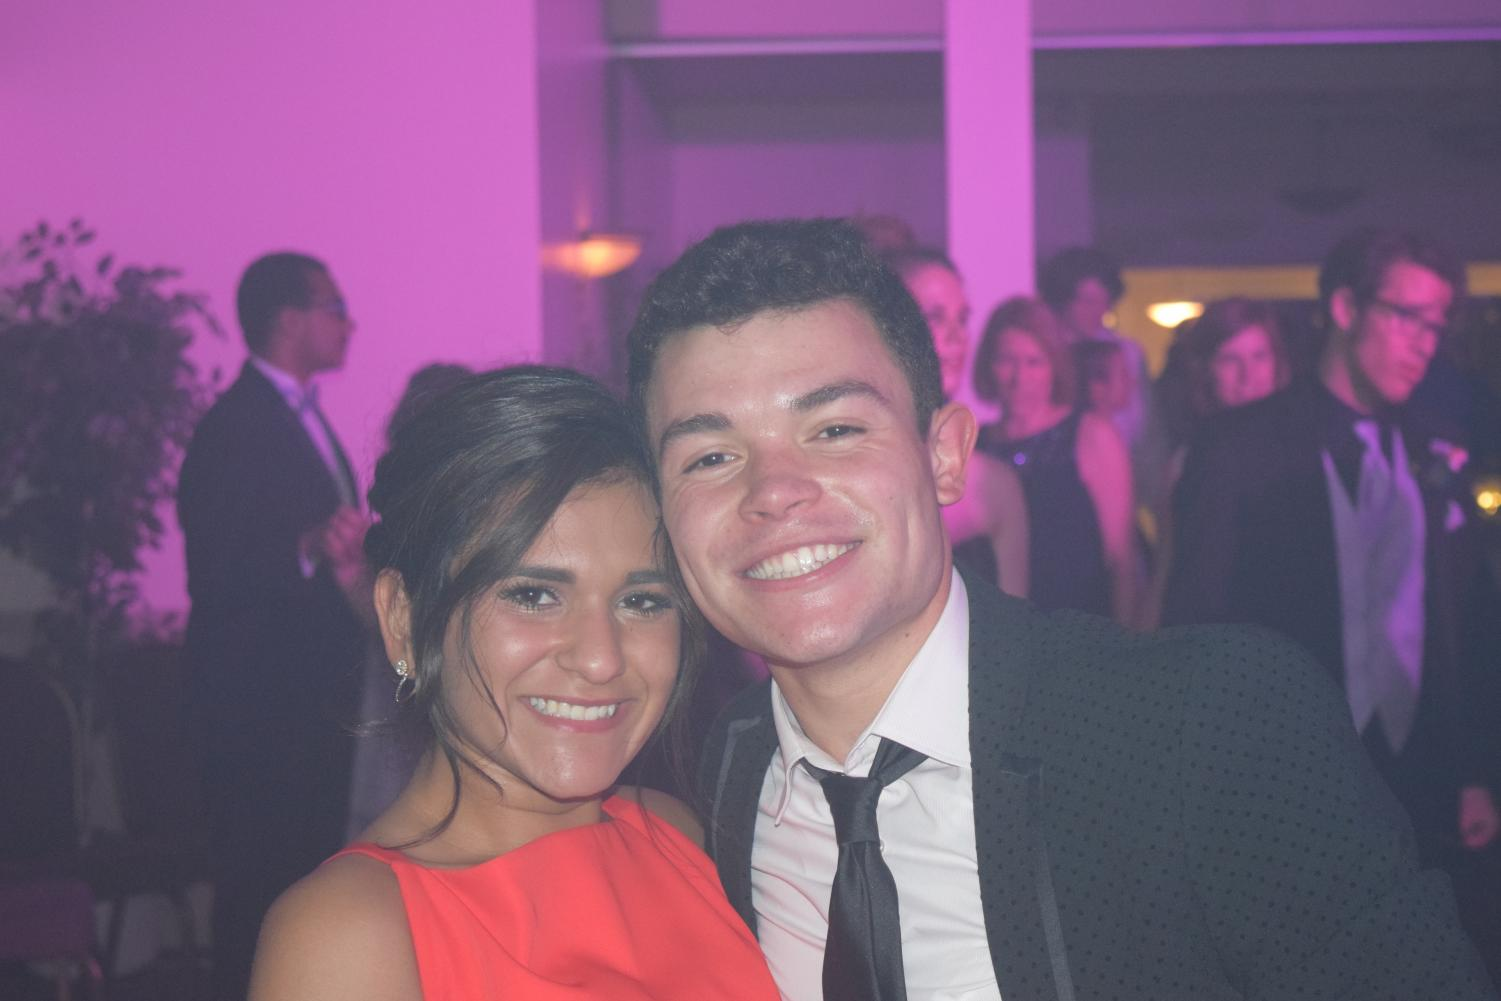 Suephie+Saam+and+her+date%2C+Jordan+Tirico%2C+pose+for+a+picture+on+the+dance+floor.+